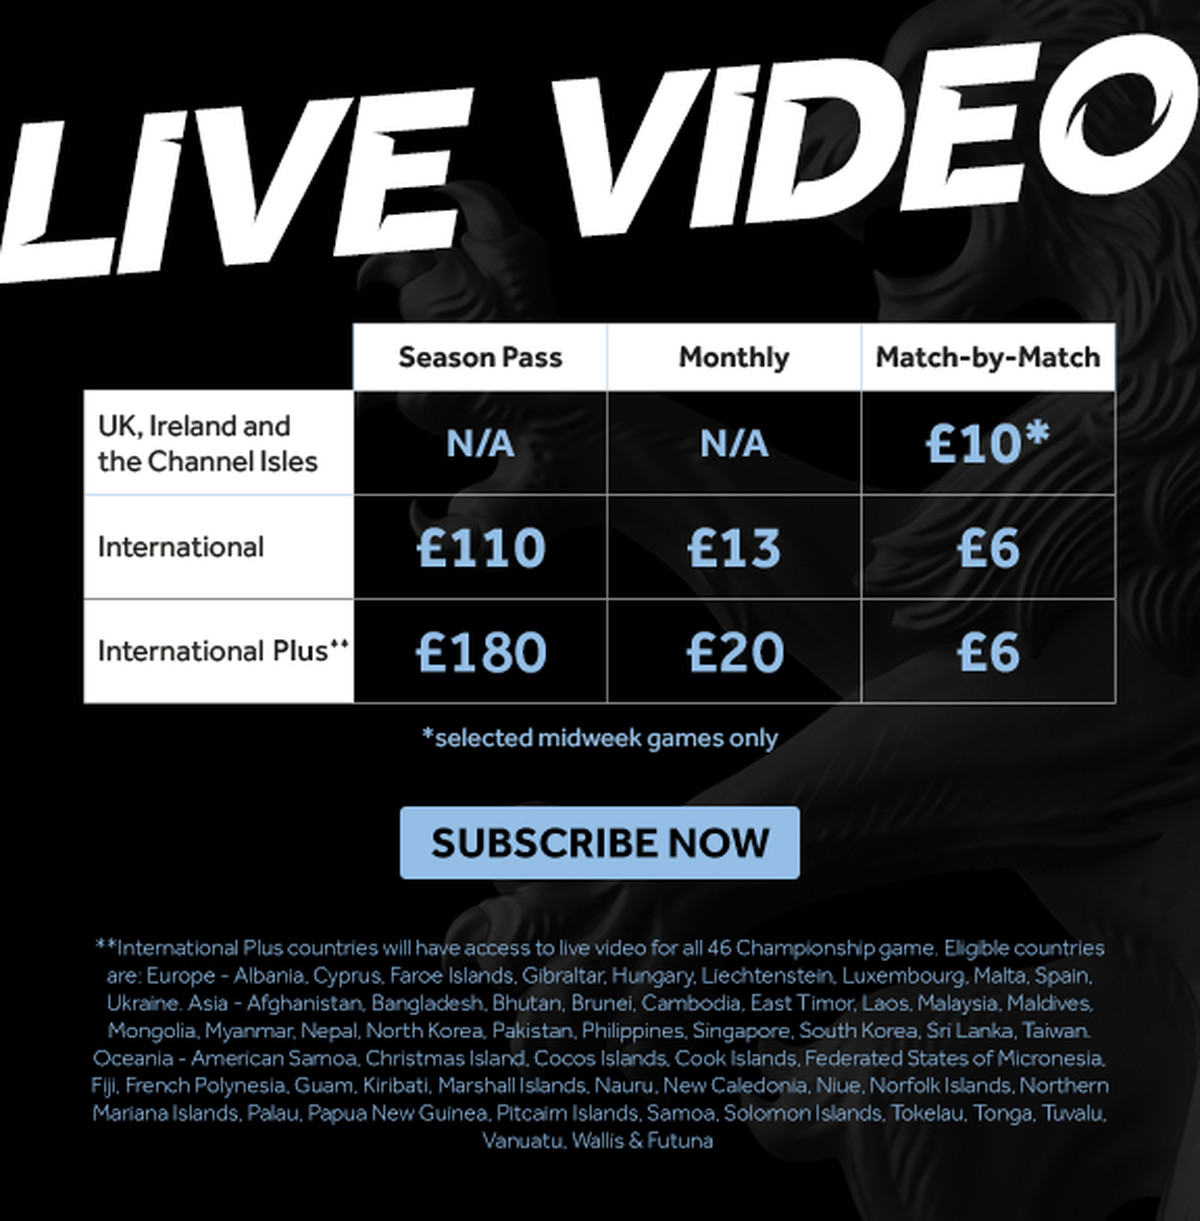 AVTV_Video_pricing_18_19.png